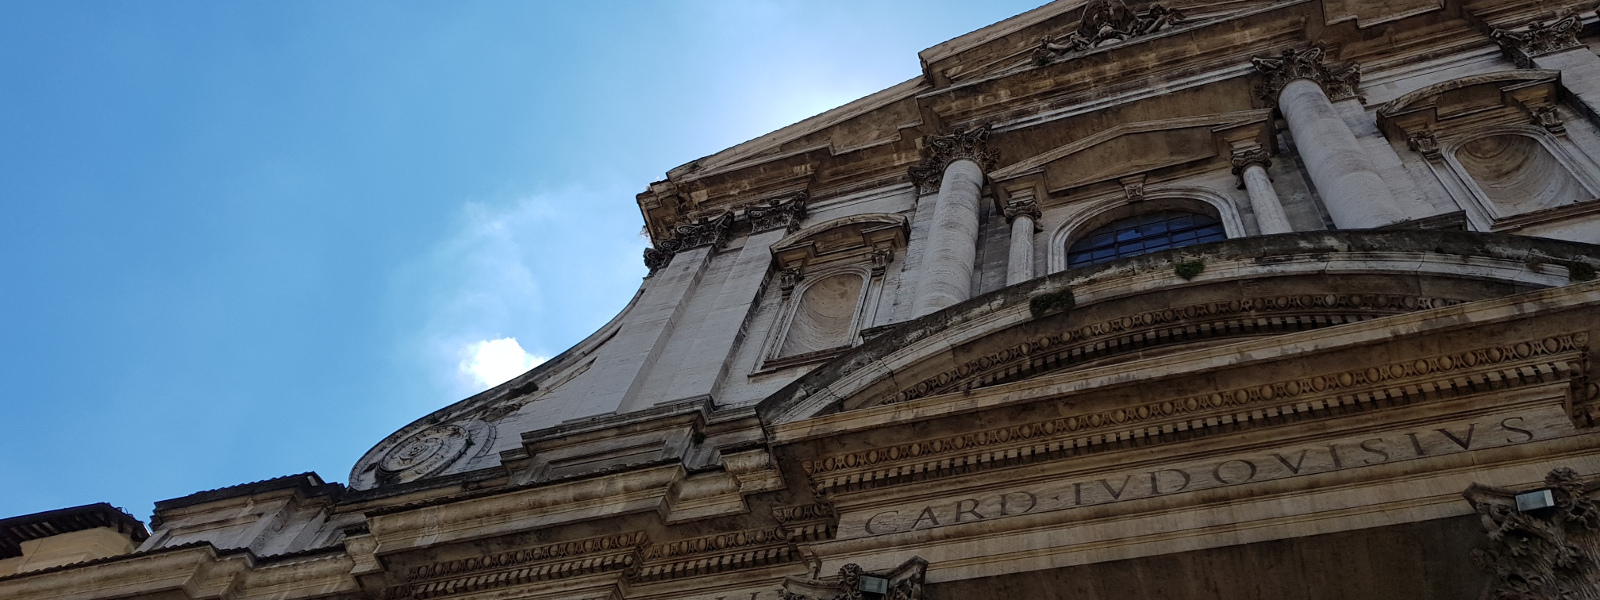 Detail of the facade of the church of Saint Ignatius in the Campo Marzio district in Rome